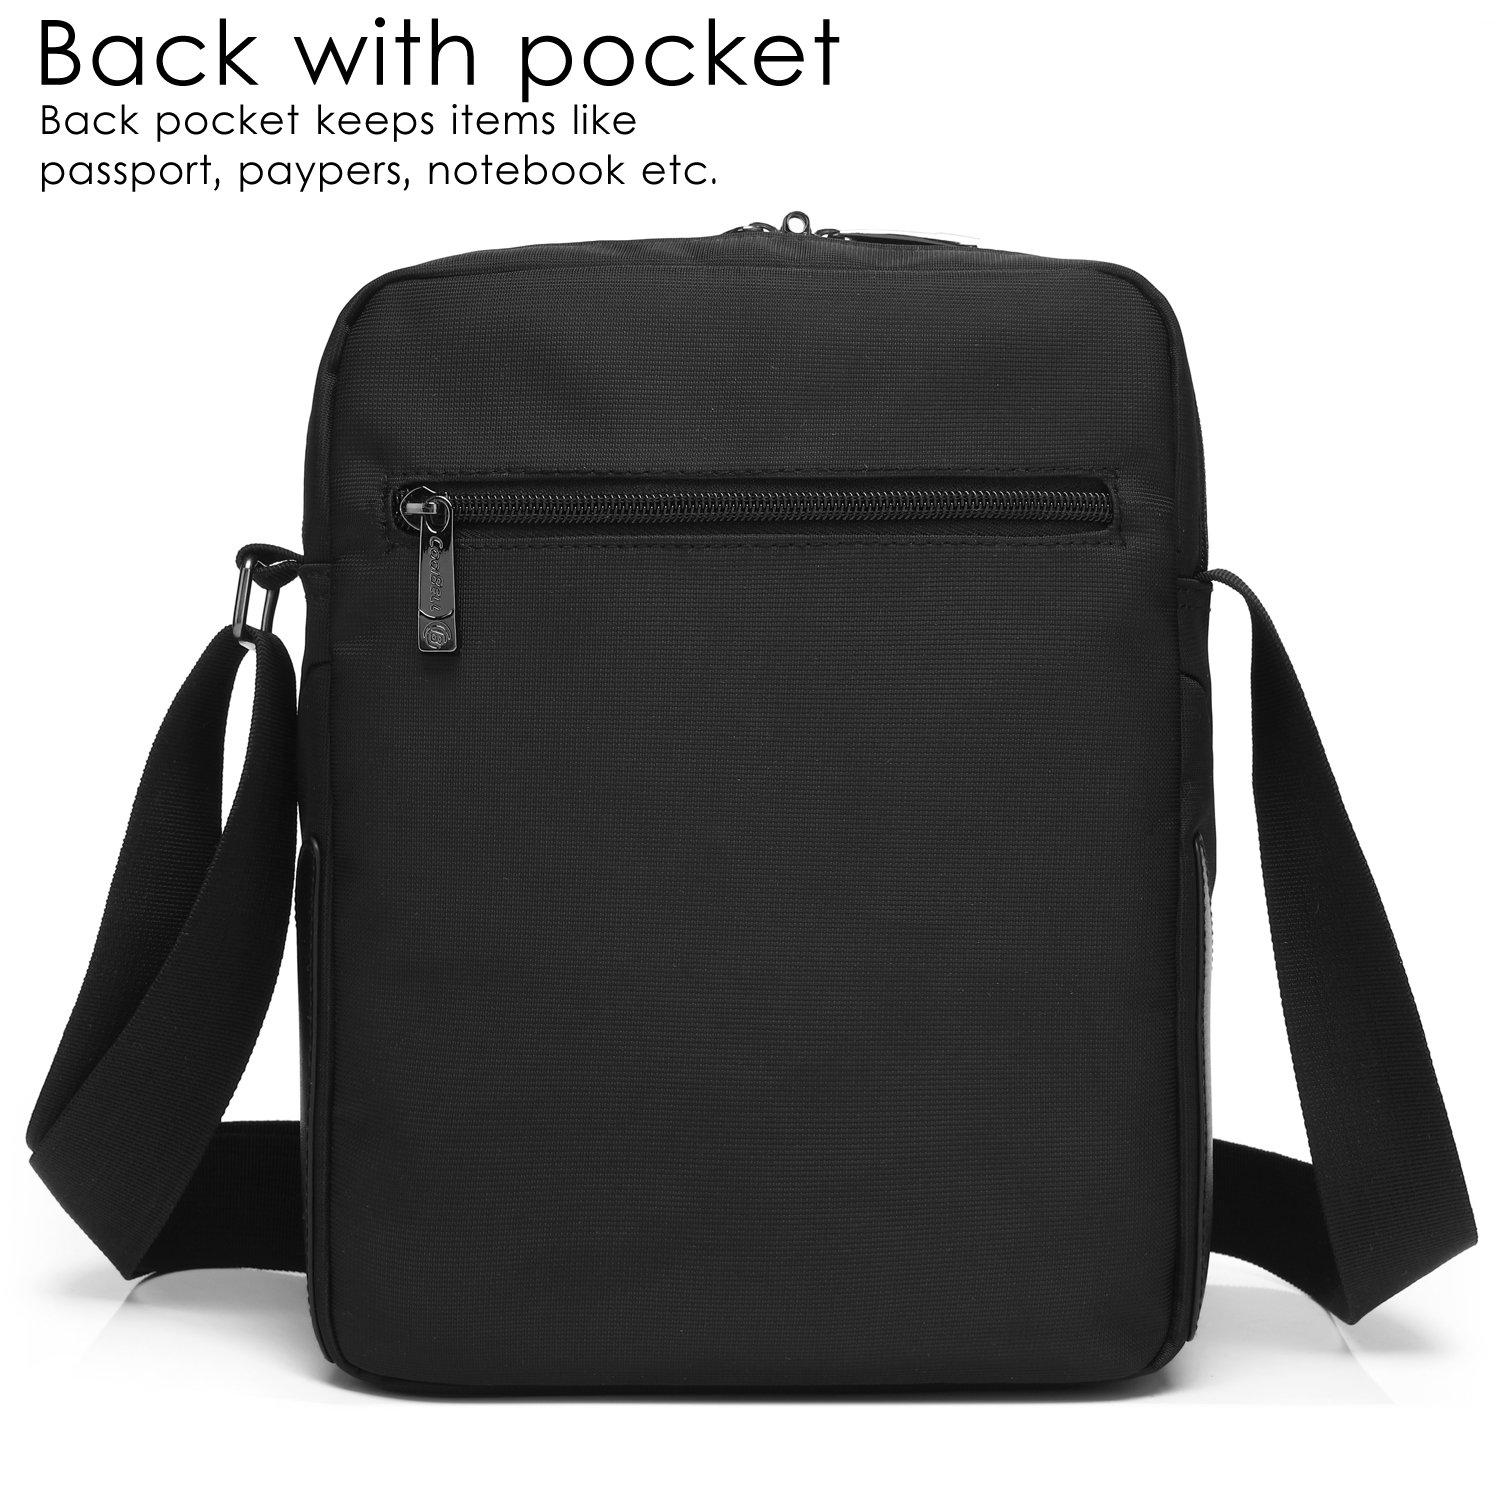 0653551abf CoolBELL 10.6 inches Shoulder Bag Fabric Messenger Bag iPad Carrying case  Hand Bag Tablet Briefcase Waterproof Oxford Cloth Laptop Computer Shoulder  Bag for ...